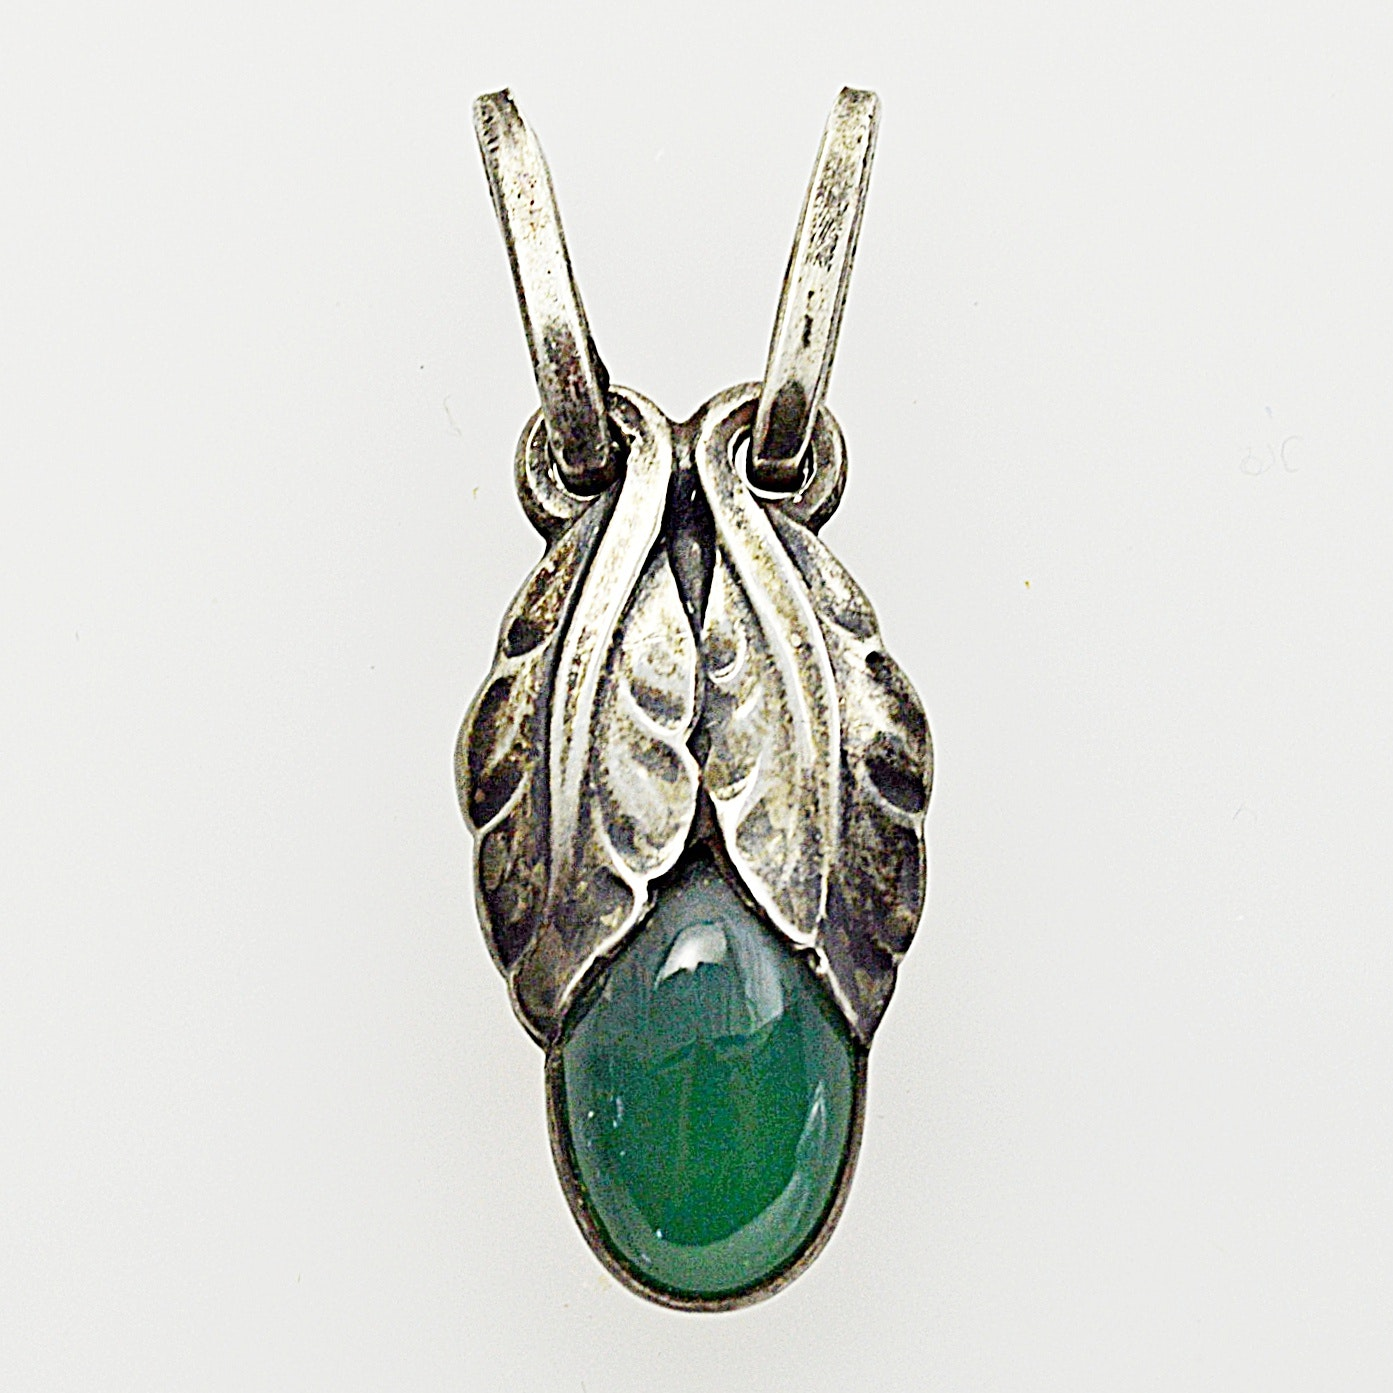 Georg Jensen Art Nouveau Sterling Silver and Green Quartz Flower Bud Pendant